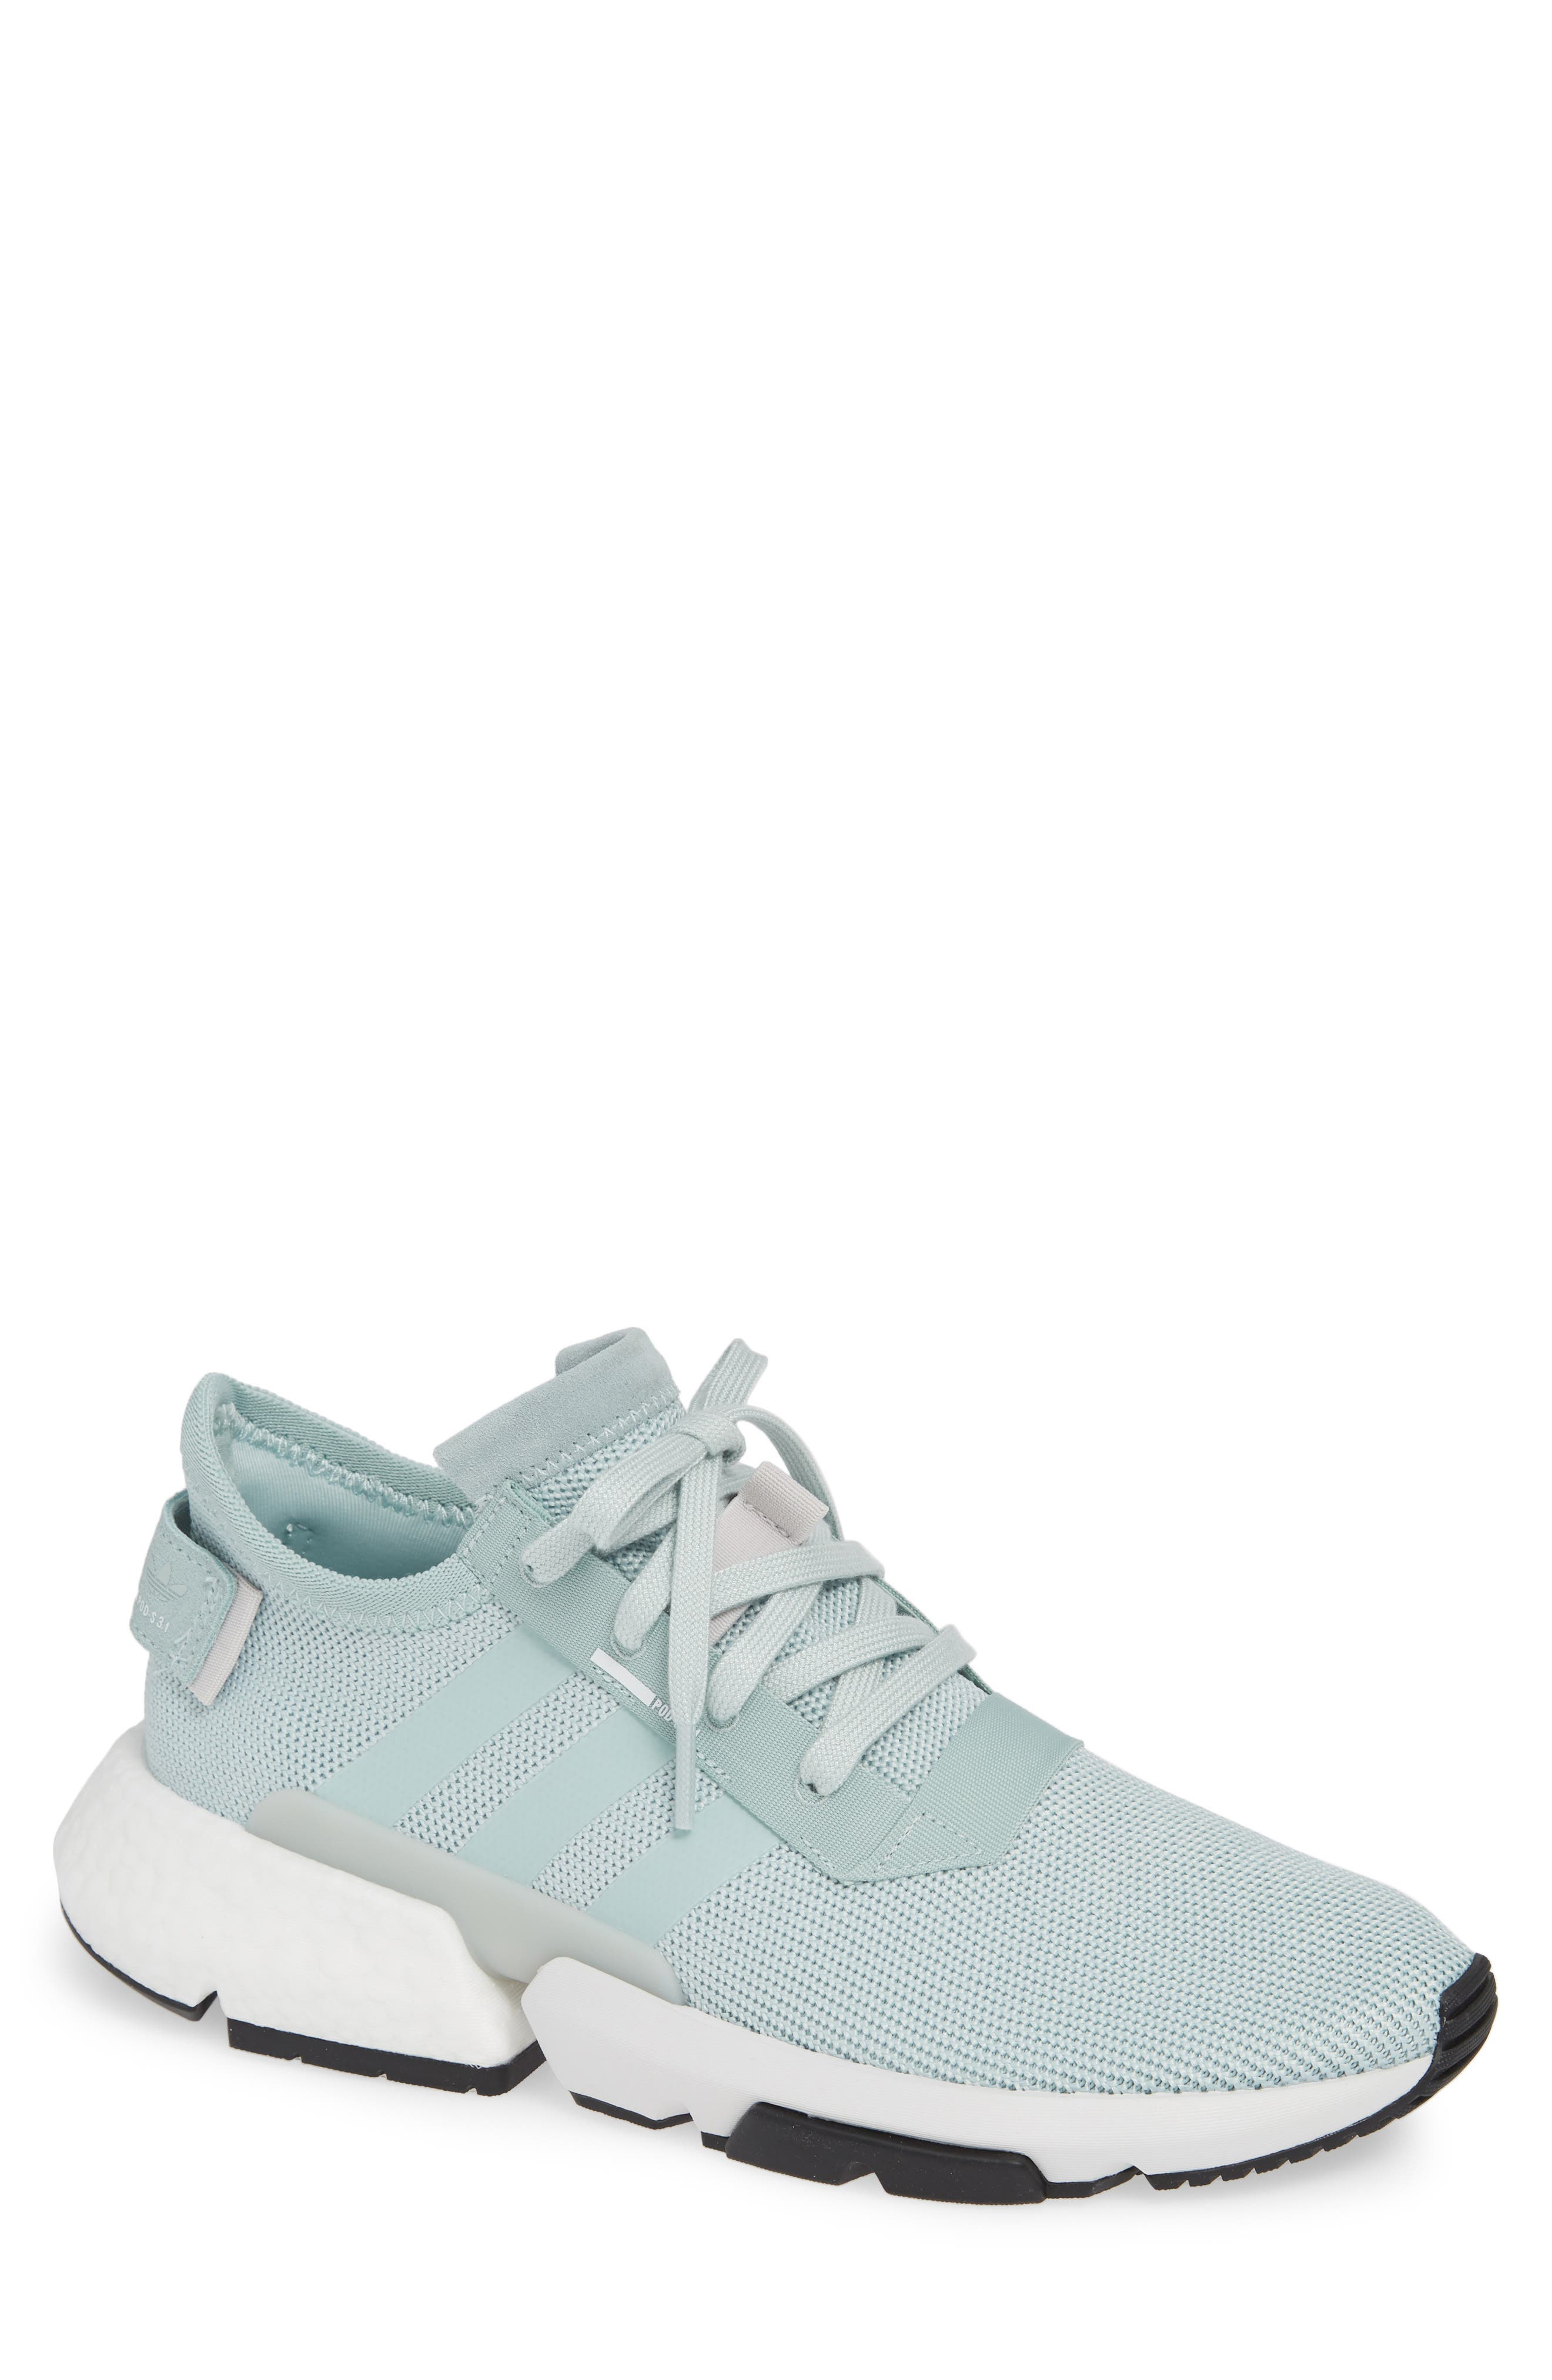 P.O.D.S3.1 Sneaker,                         Main,                         color, VAPOR GREEN / GREY